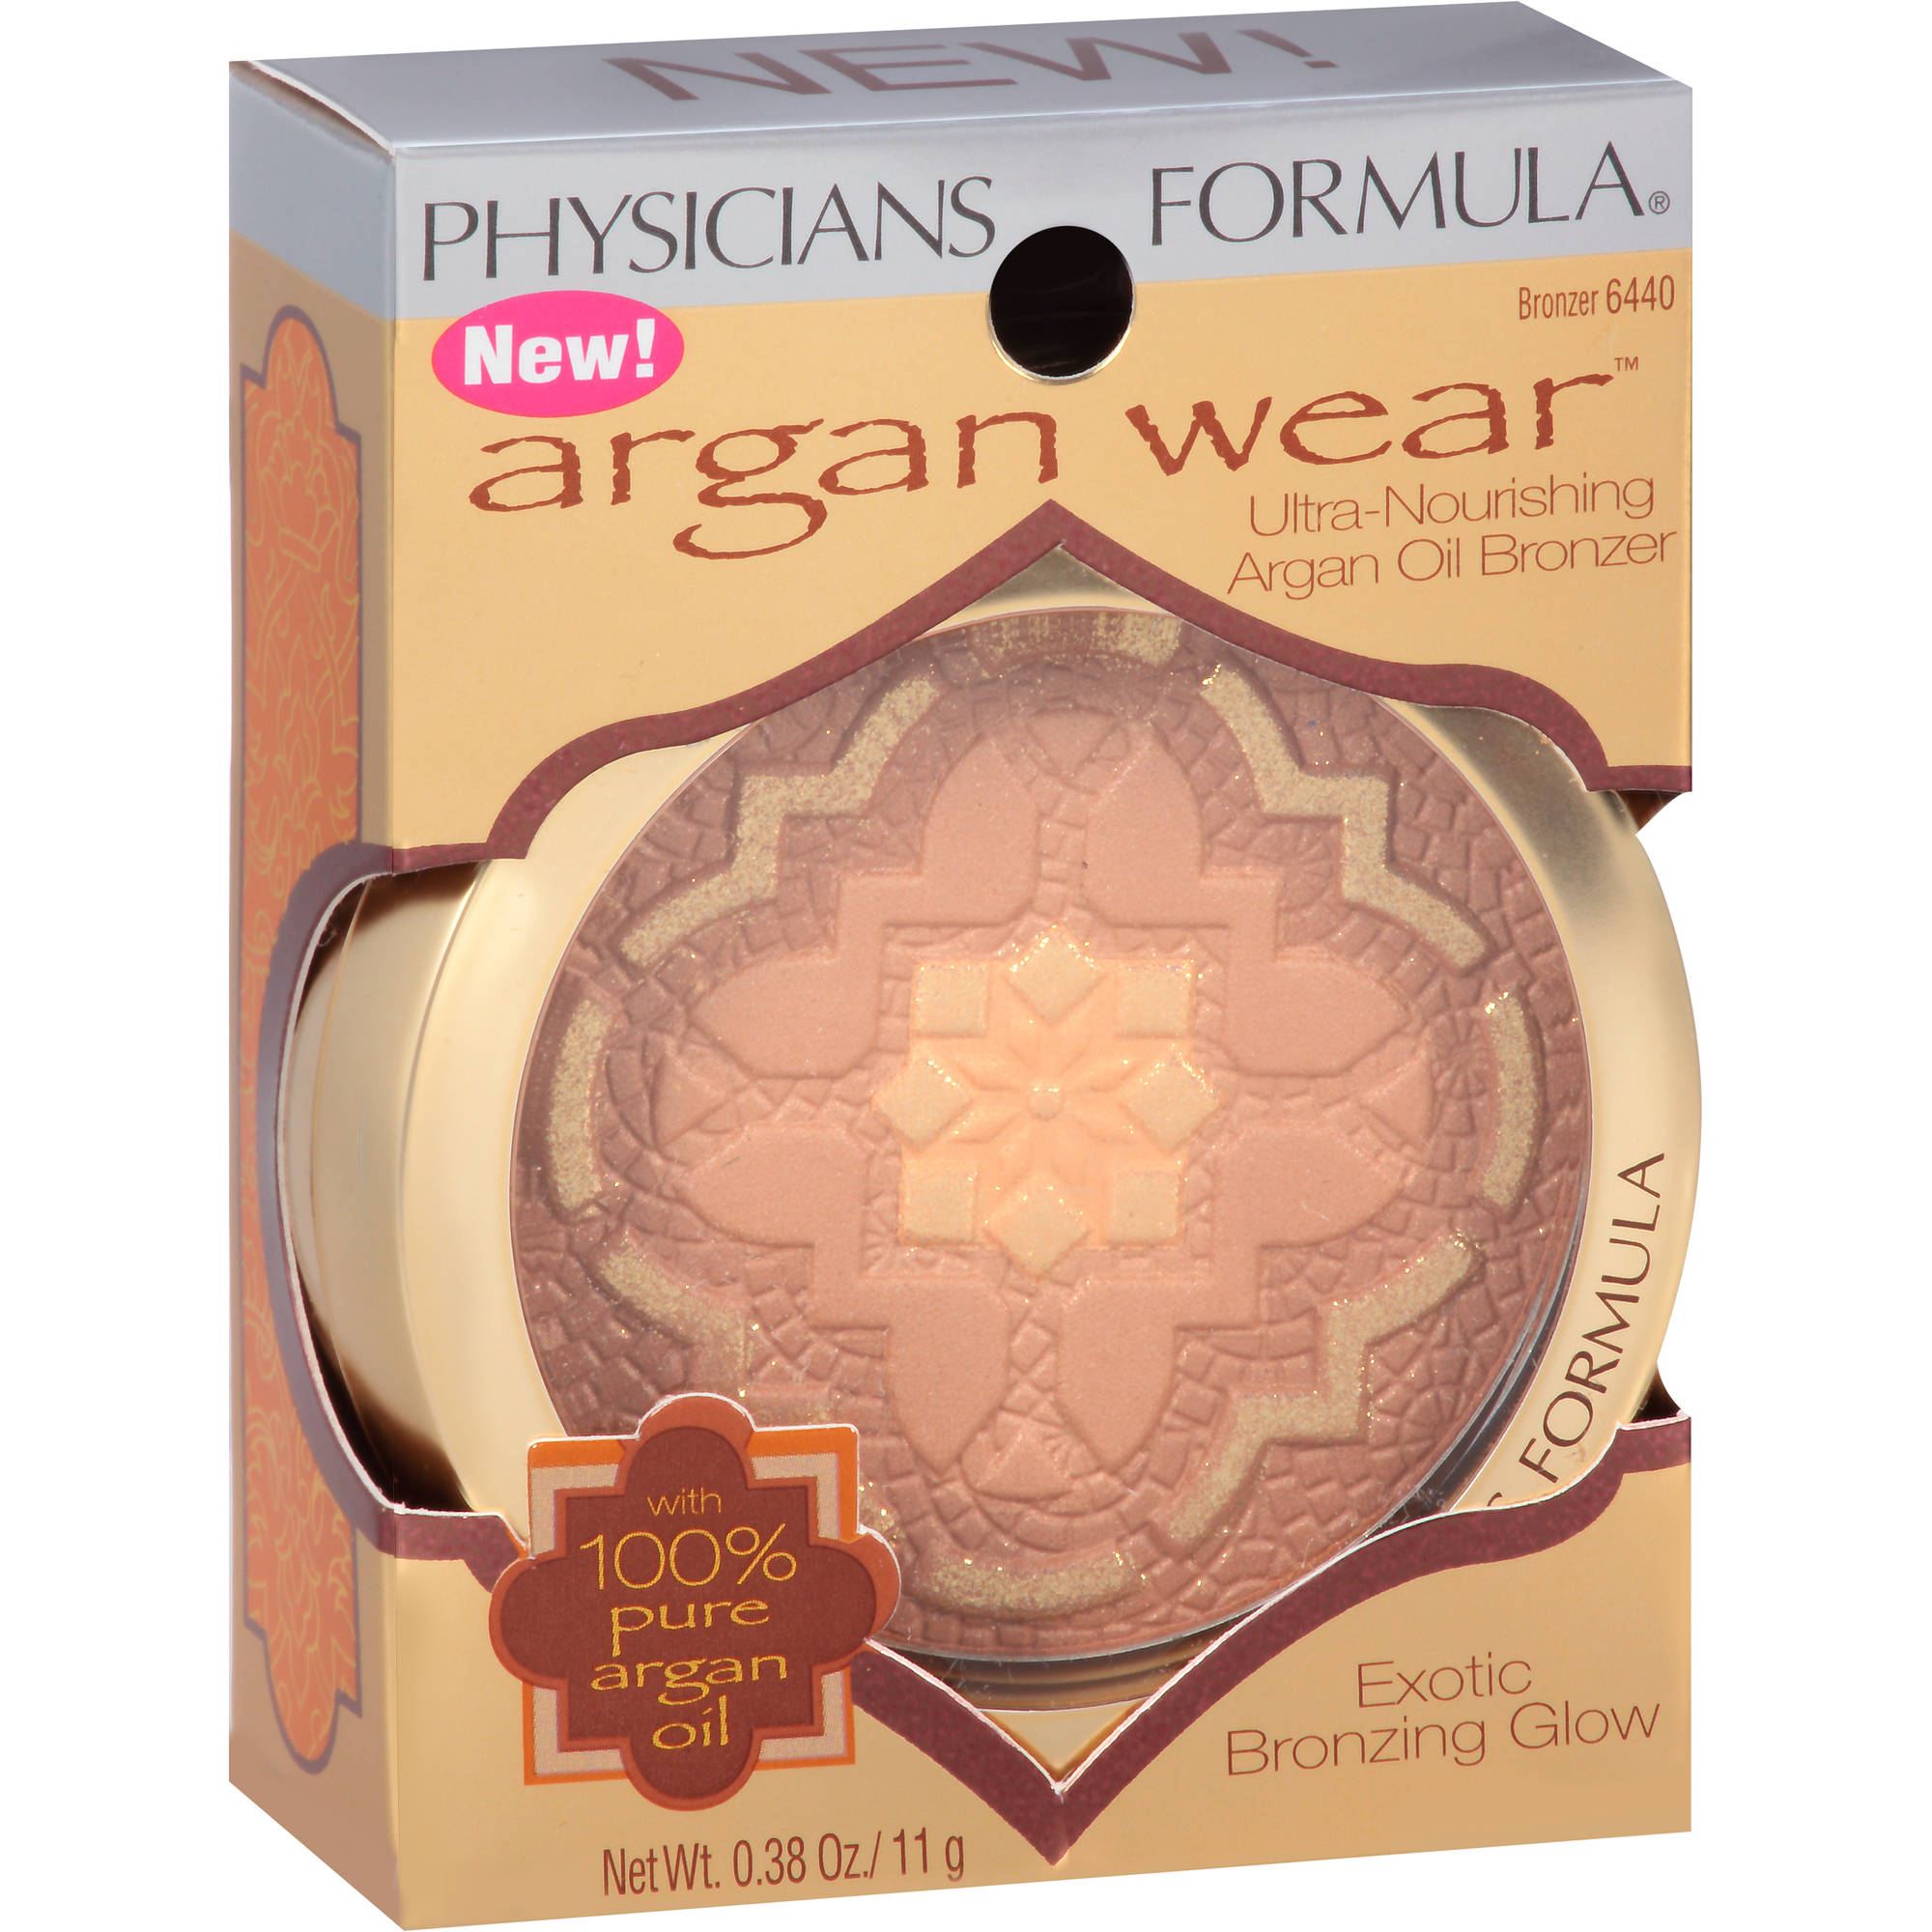 Physicians Formula Argan Wear Ultra-Nourishing Argan Oil Bronzer, 6440, 0.38 oz